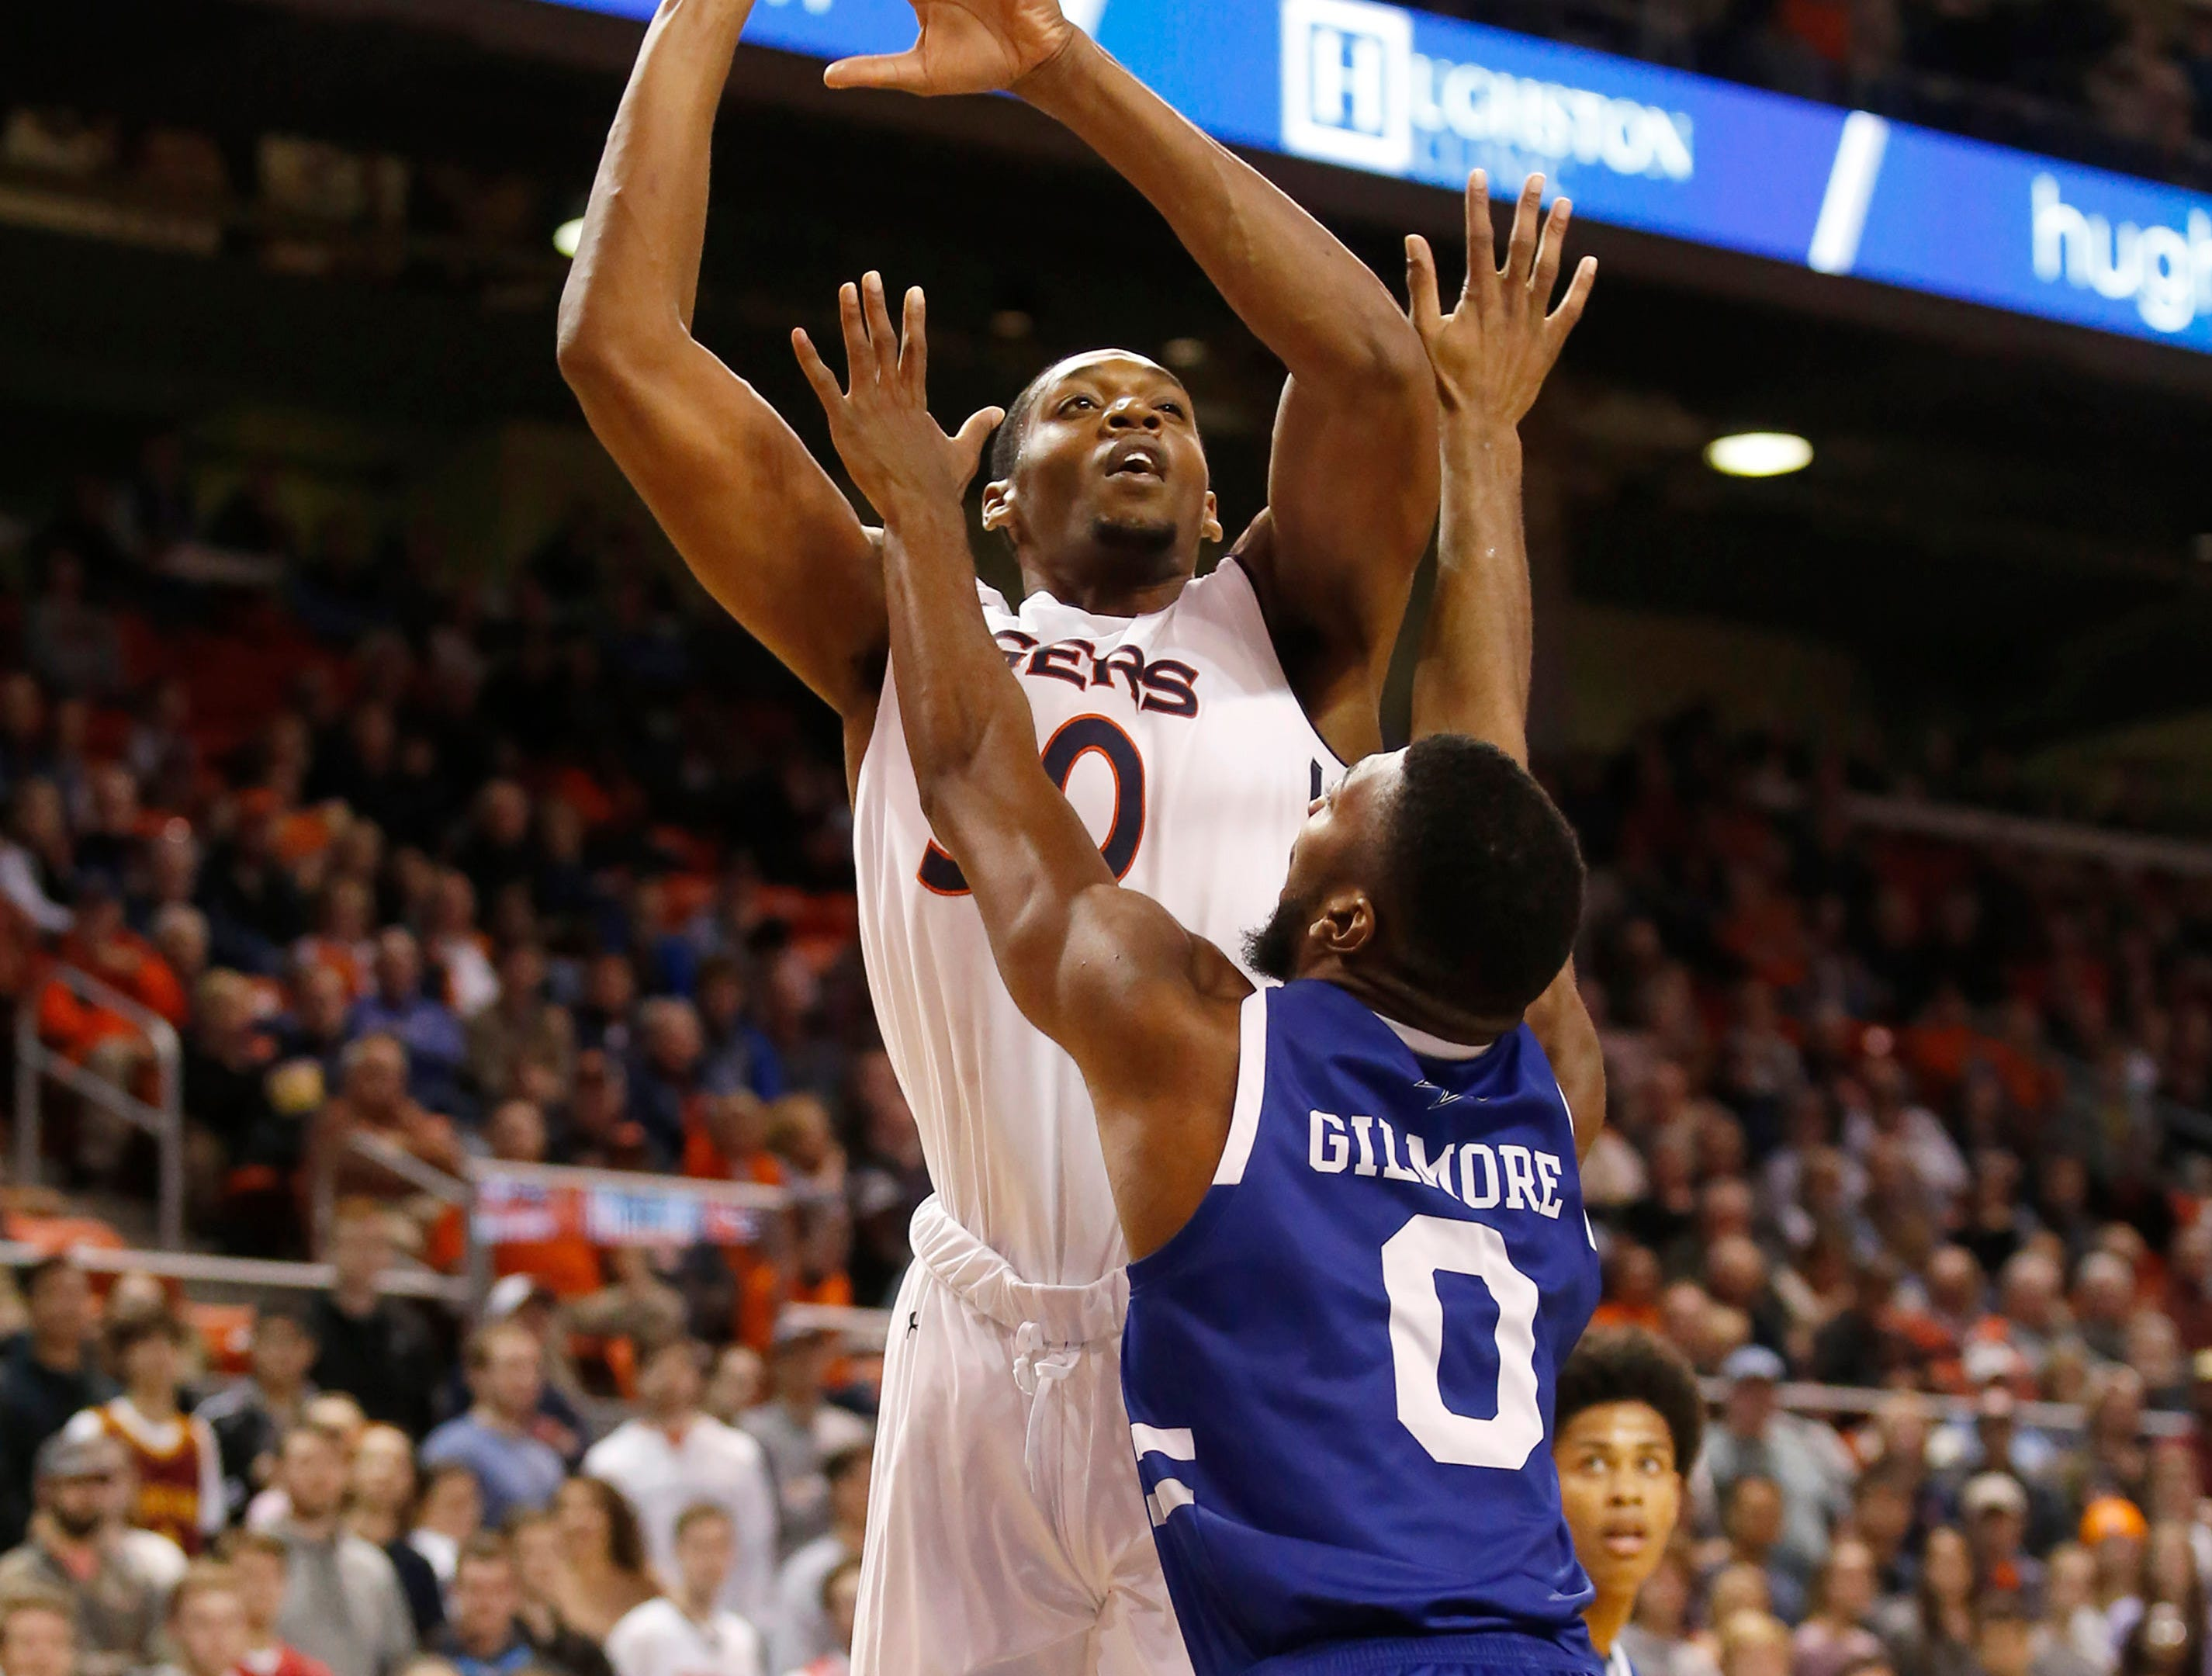 Dec 4, 2018; Auburn, AL, USA; Auburn Tigers center Austin Wiley (50) shoots over UNC-Asheville Bulldogs forward Donovan Gilmore (0) during the second half at Auburn Arena. Mandatory Credit: John Reed-USA TODAY Sports